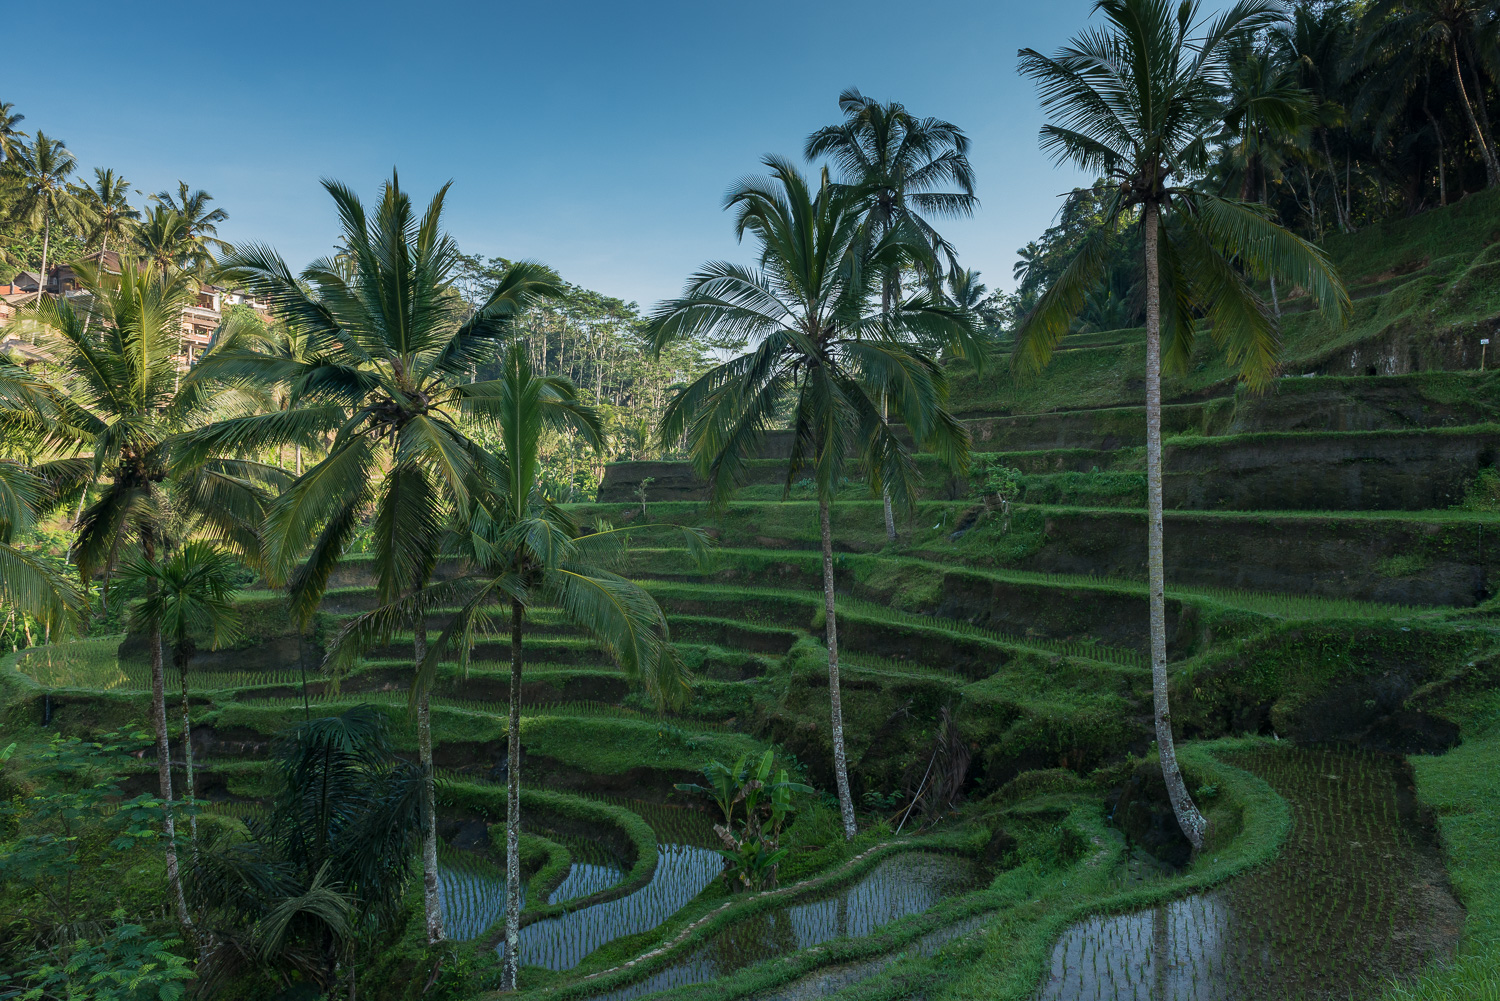 indonesia-june-2014-11.jpg